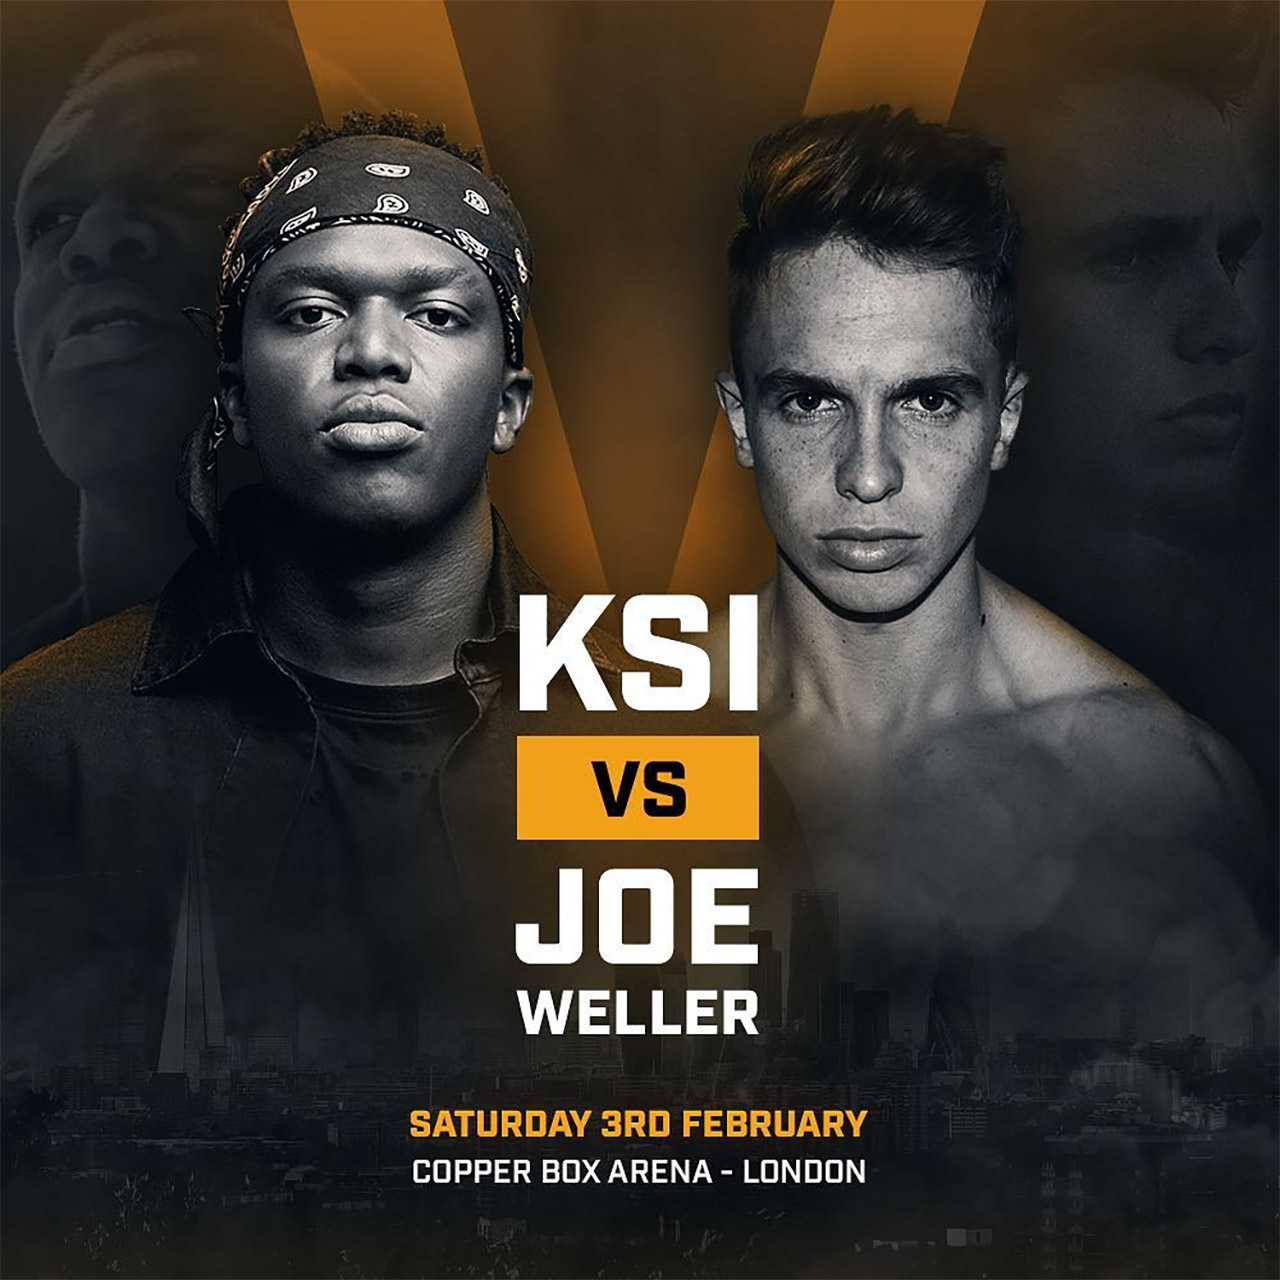 ksi vs joe weller boxing